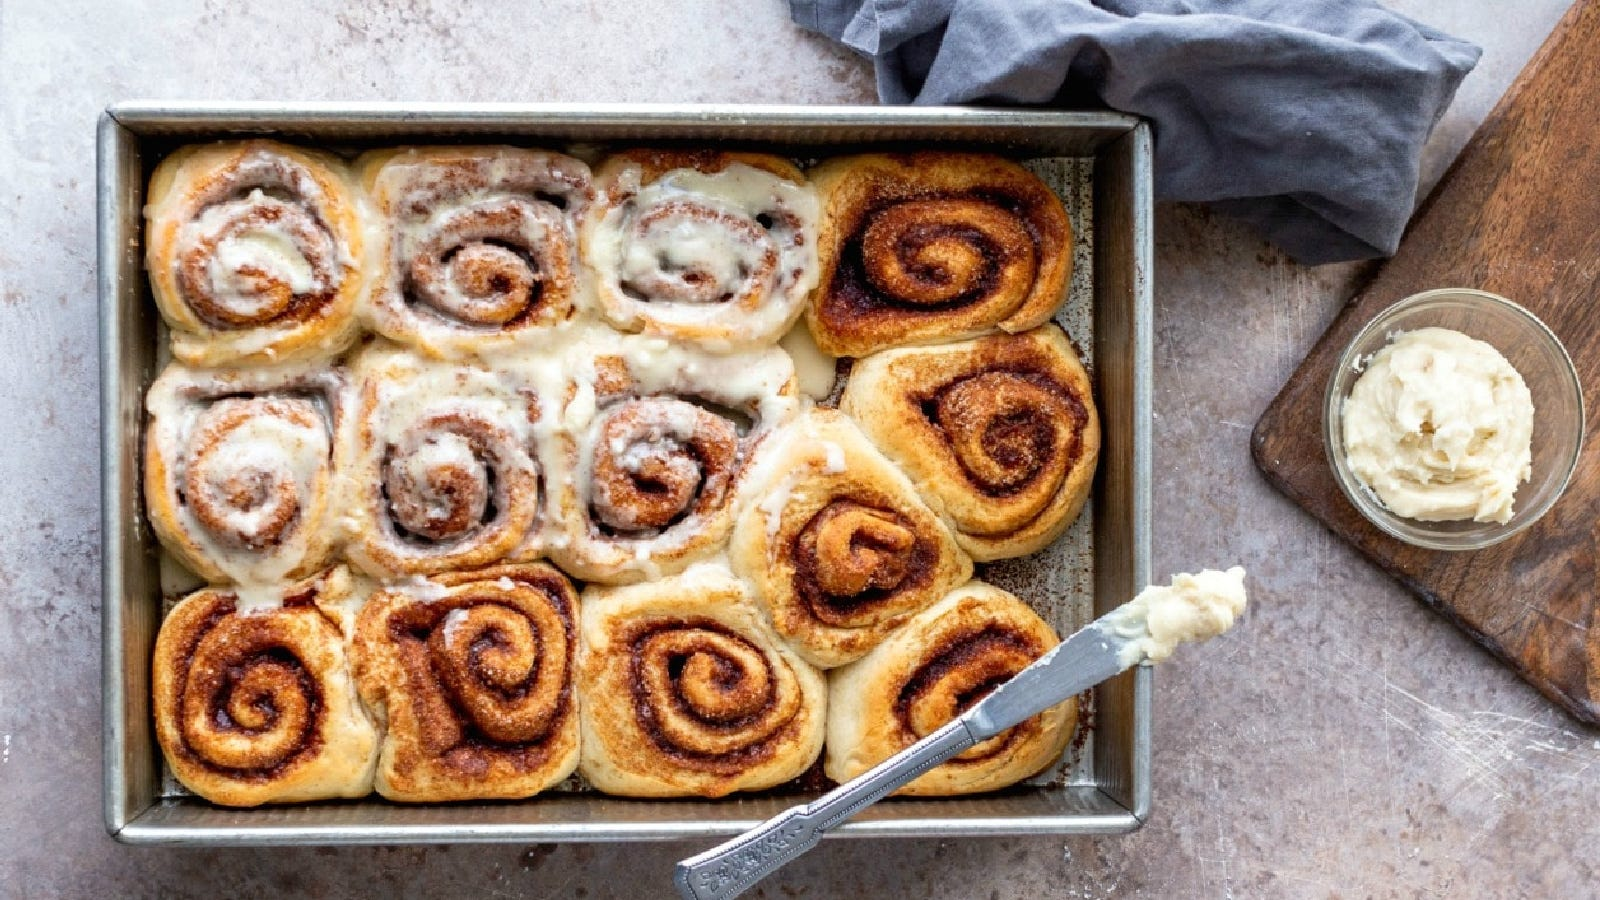 A top view of cinnamon rolls with a maple frosting being smeared over each soft warm bun.